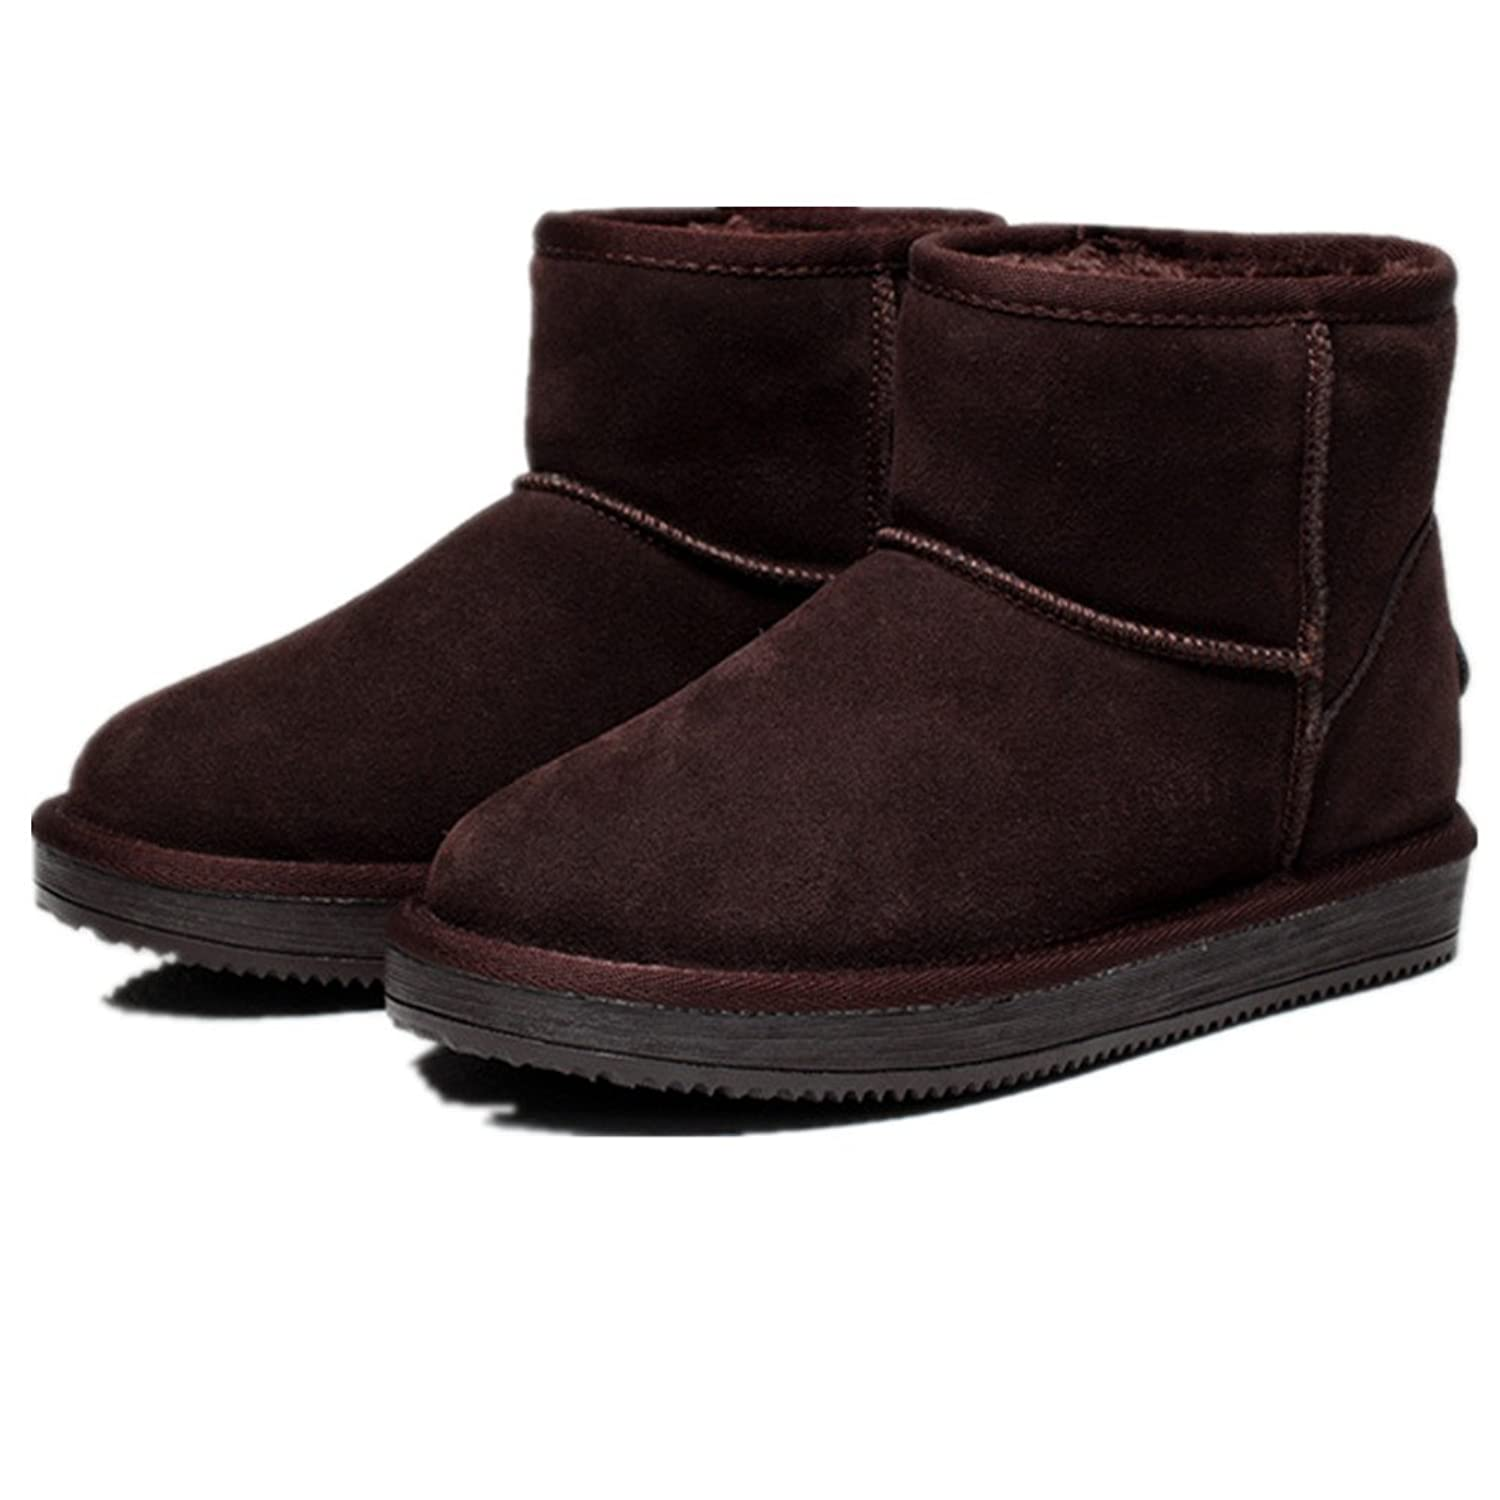 Fur Covered Womens Short version Snow Boots Fully Fur Lined Waterproof Winter Snow Boots Coffee